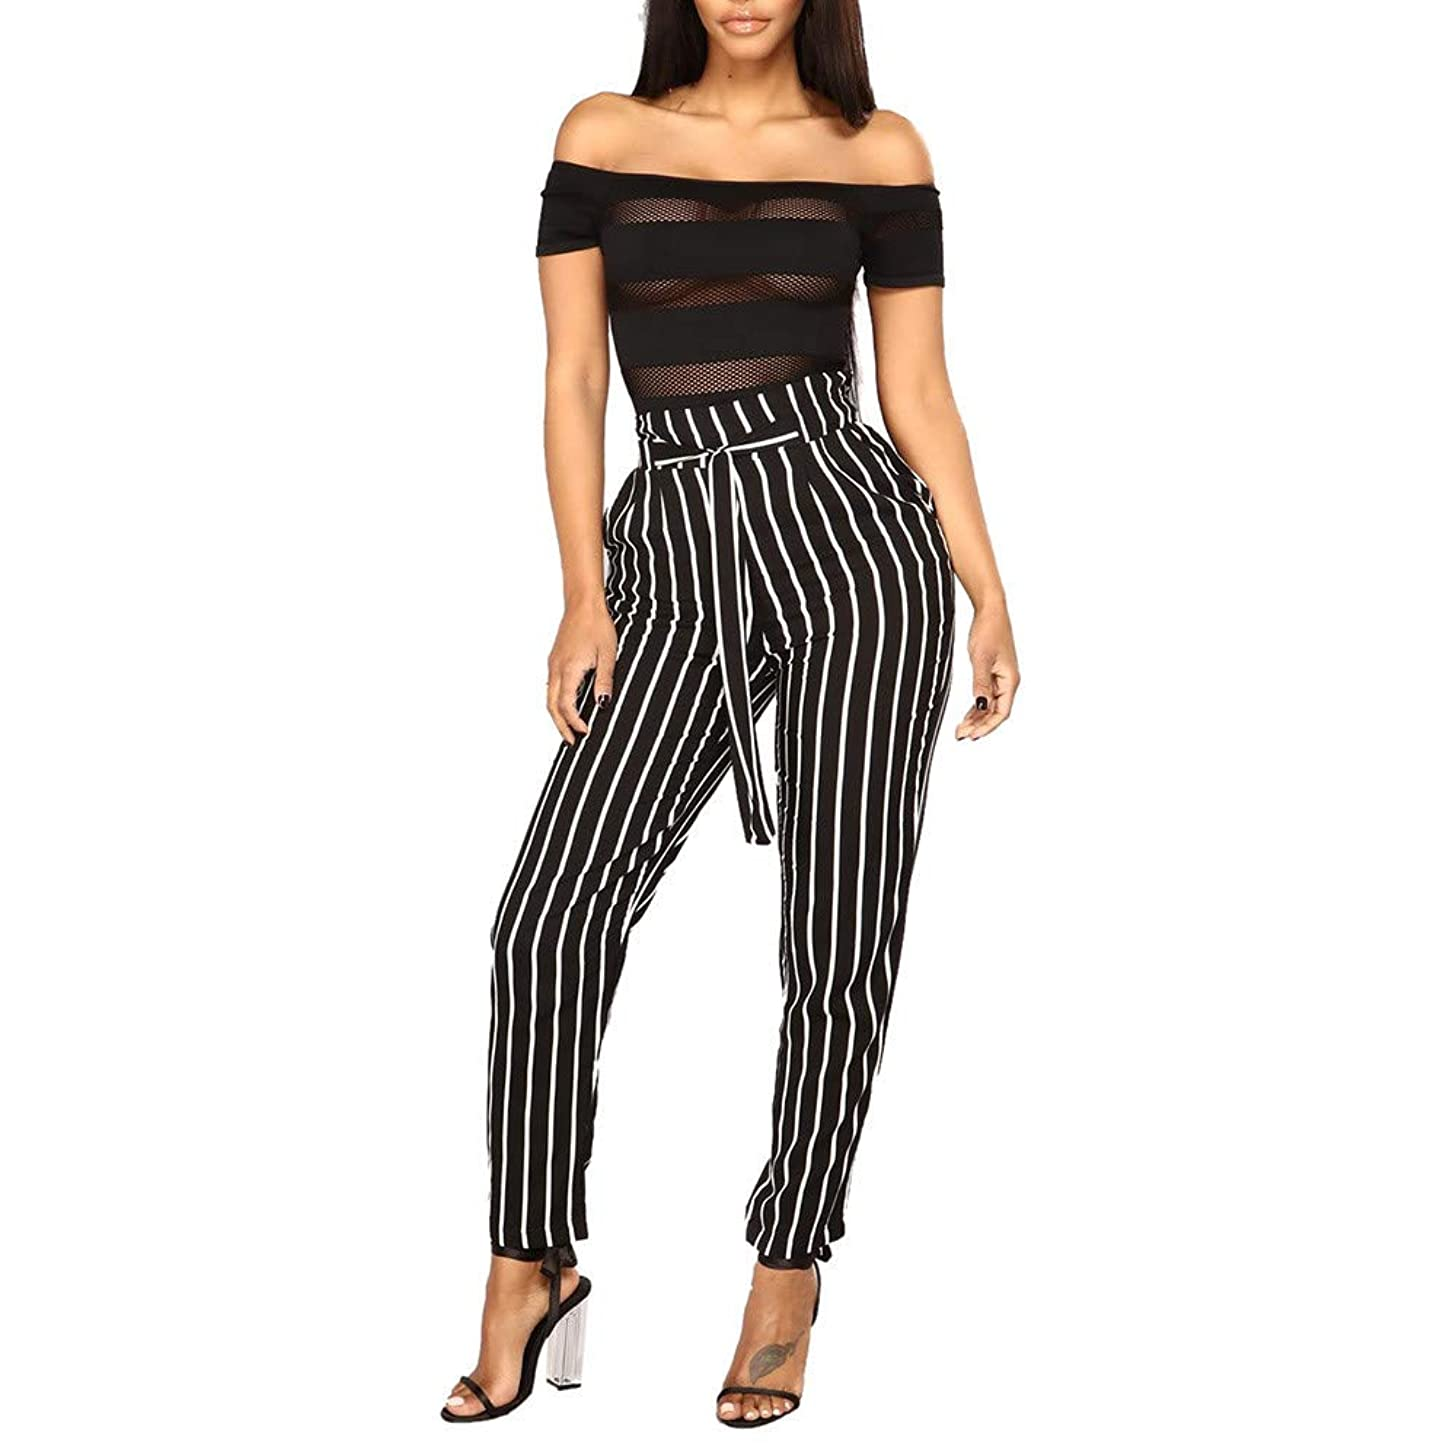 Pants for Women Work Casual Skinny Jamiacy Summer High Waist Harem Pant owtie Elastic Waist Stripe Casual Pants